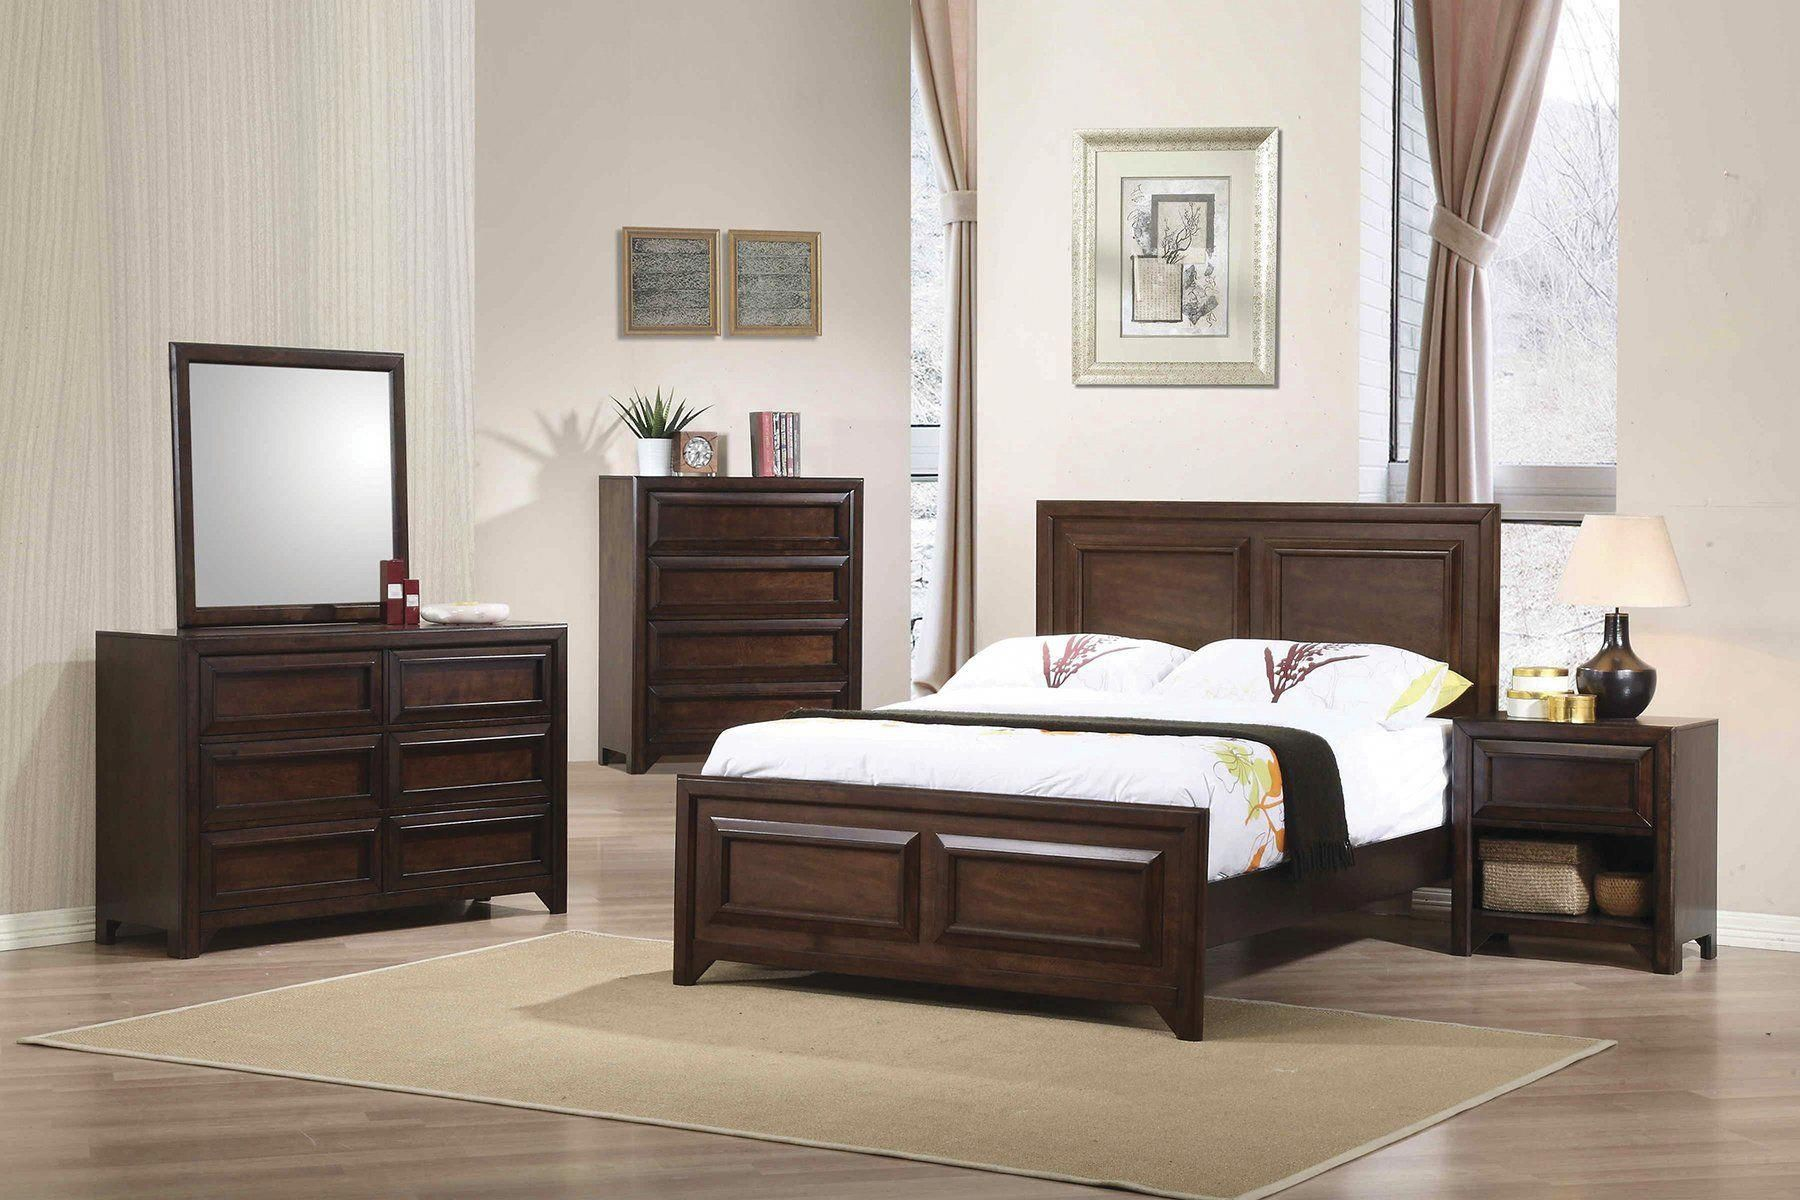 35 Exciting Guidelines For boysbedroomfurniture Bedroom